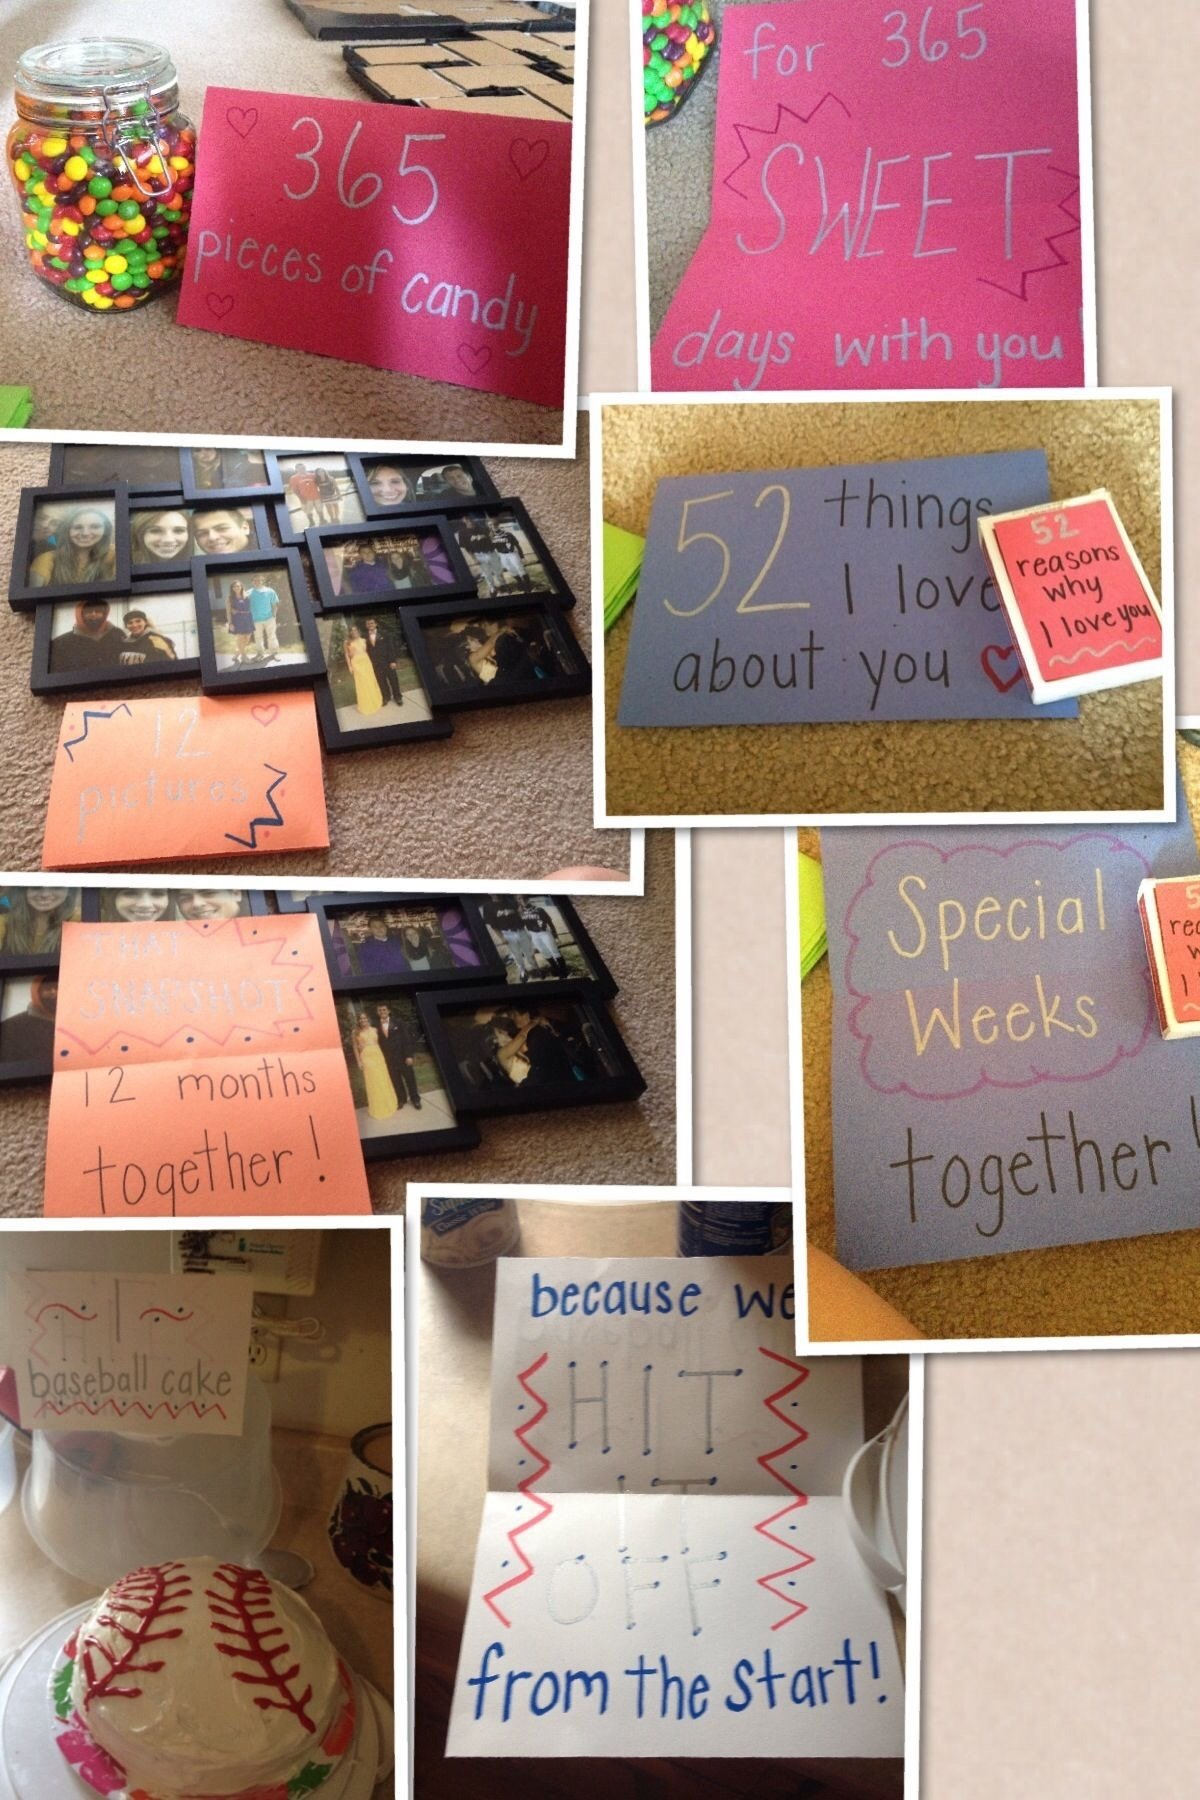 10 Ideal Cute Anniversary Ideas For Him pinmadilyn alysse on gift ideas pinterest gift 3 2020